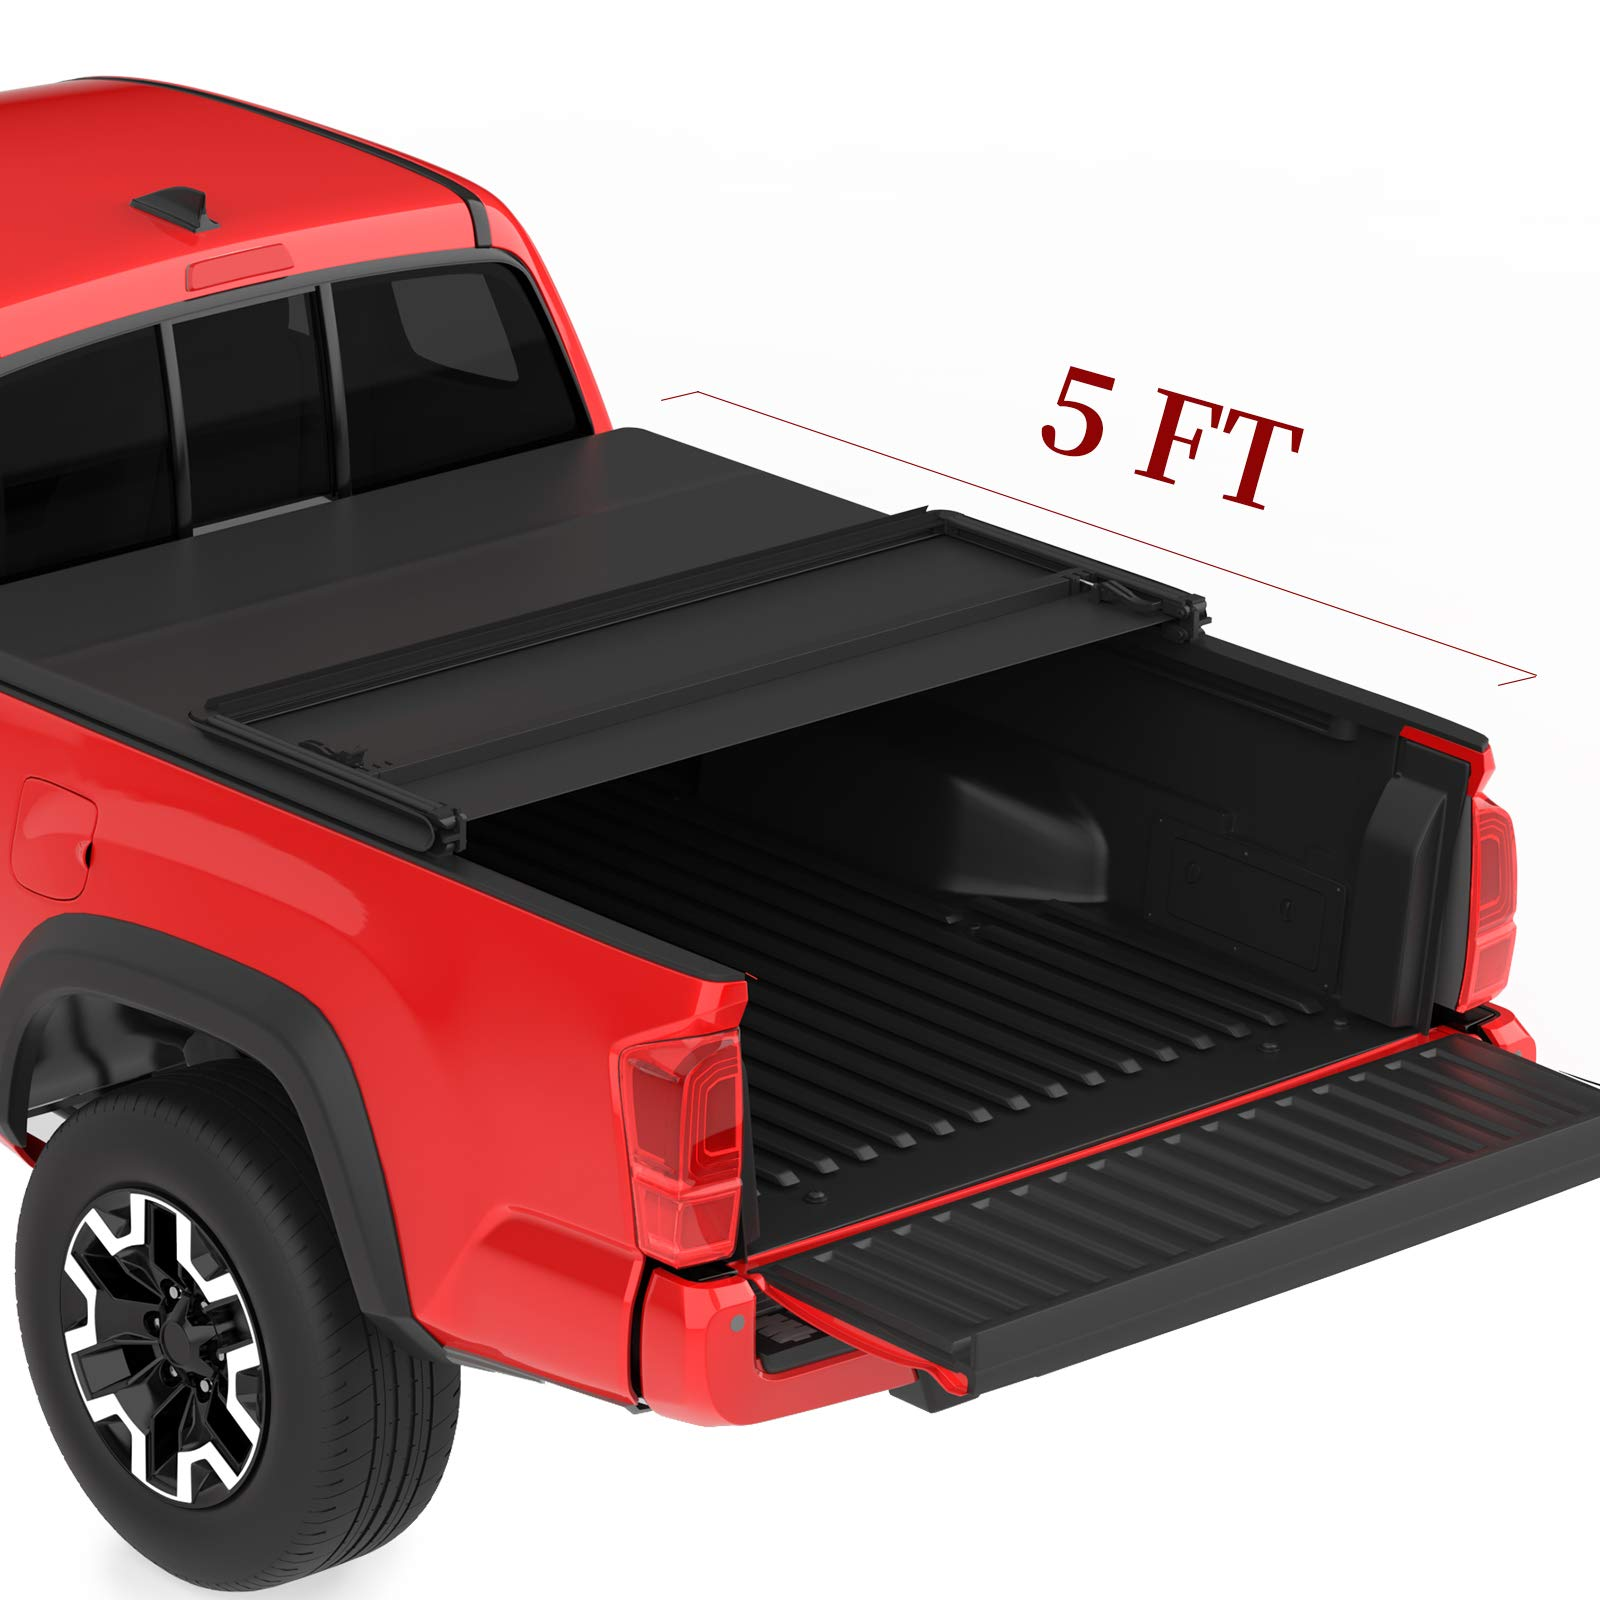 Oedro Upgraded Soft Tri Fold Truck Bed T Buy Online In Jamaica At Desertcart